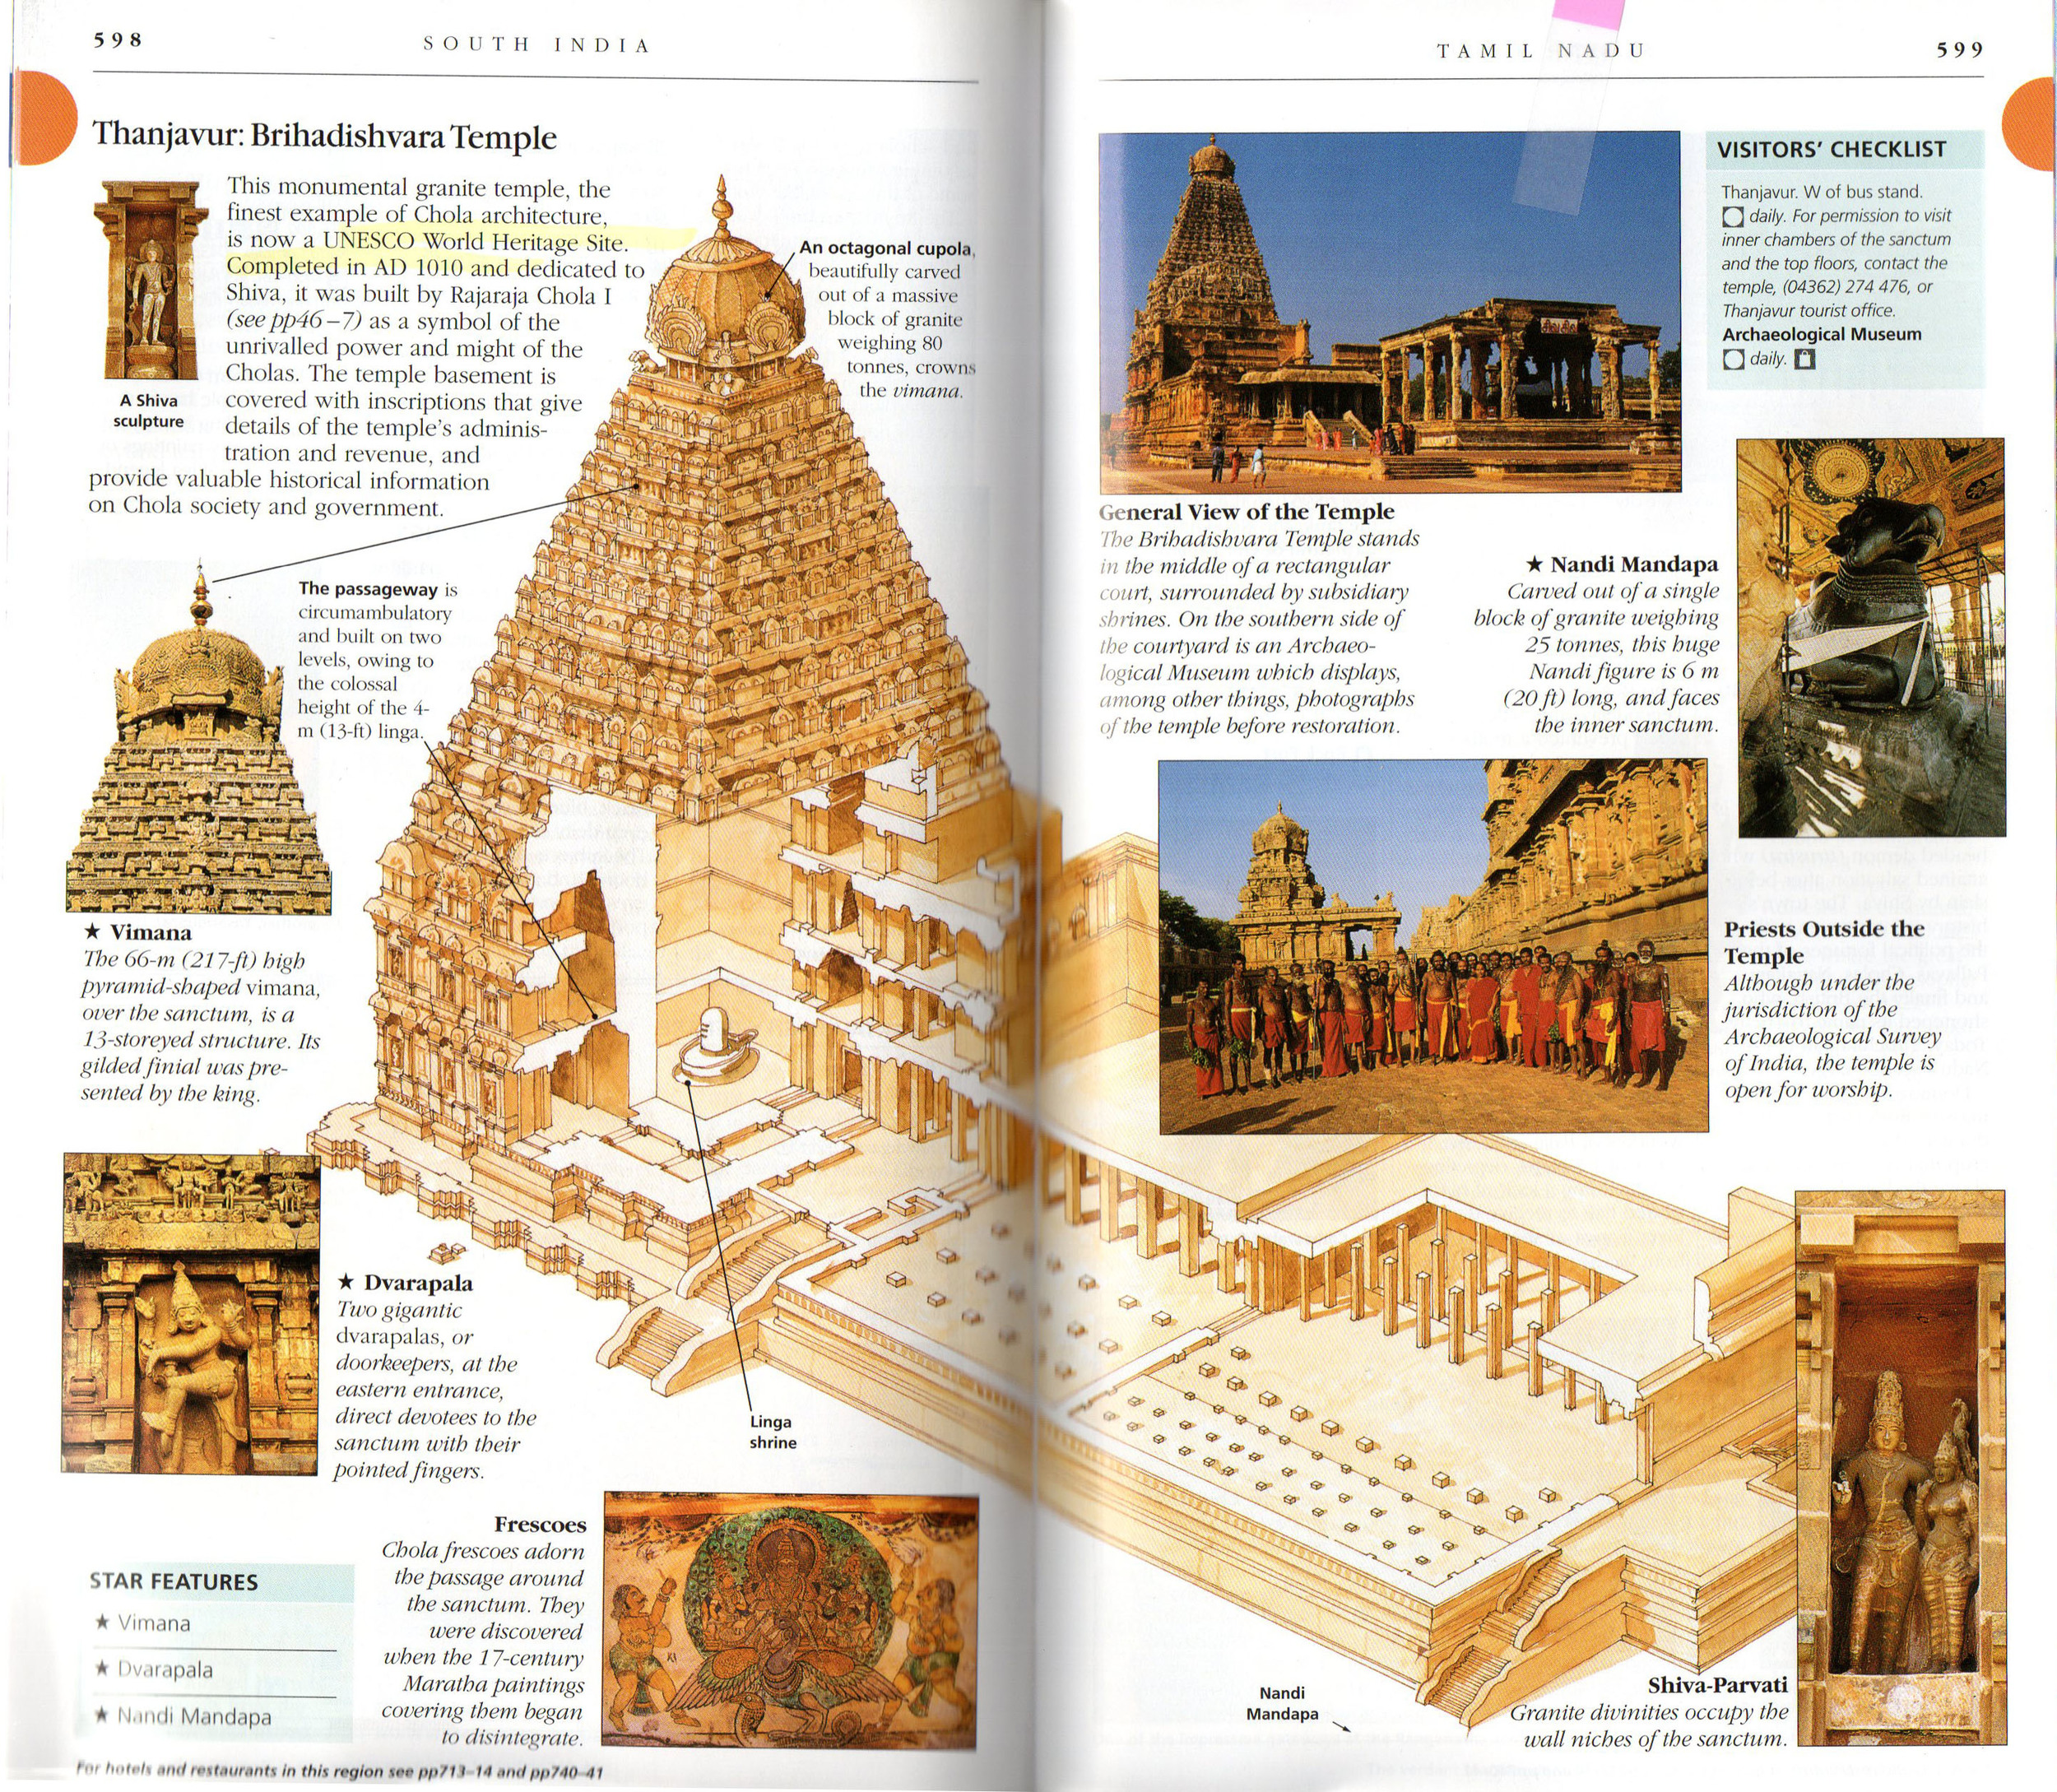 A scan from the Eyewitness Travel book.